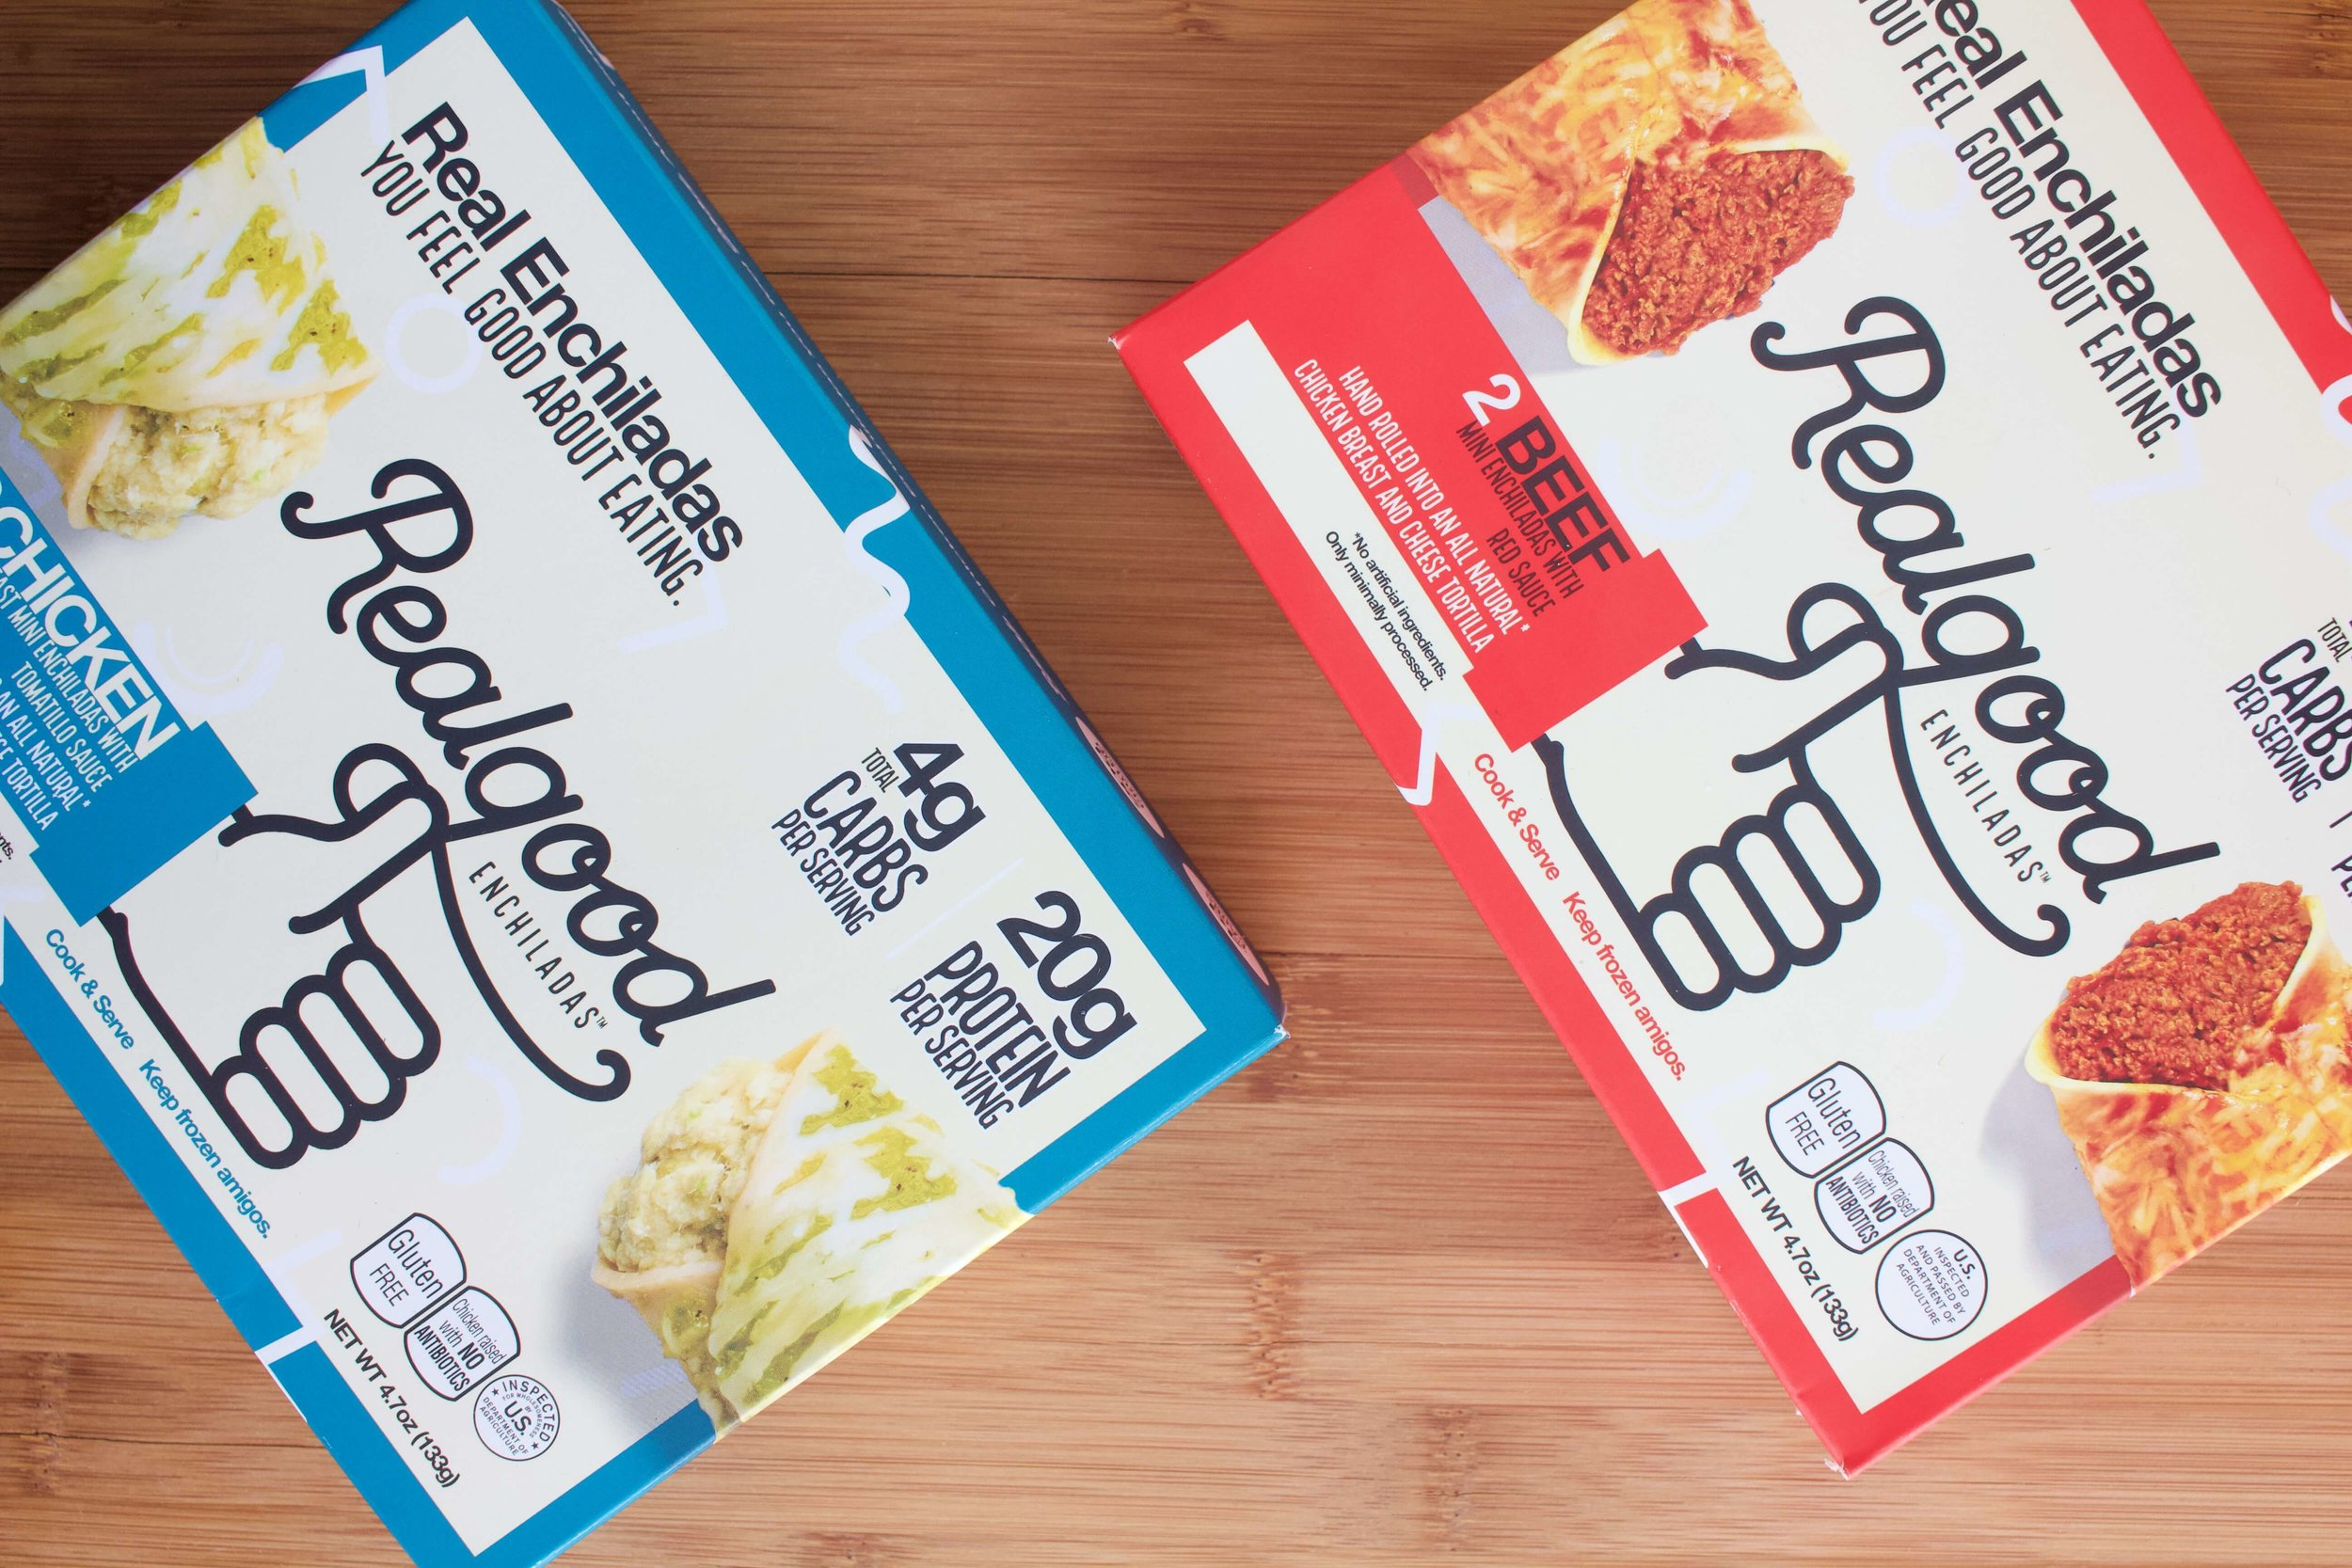 Ever tried Real Good Enchiladas? Here's our full review for this keto frozen entree (plus a code to save 15% when you order them online)!